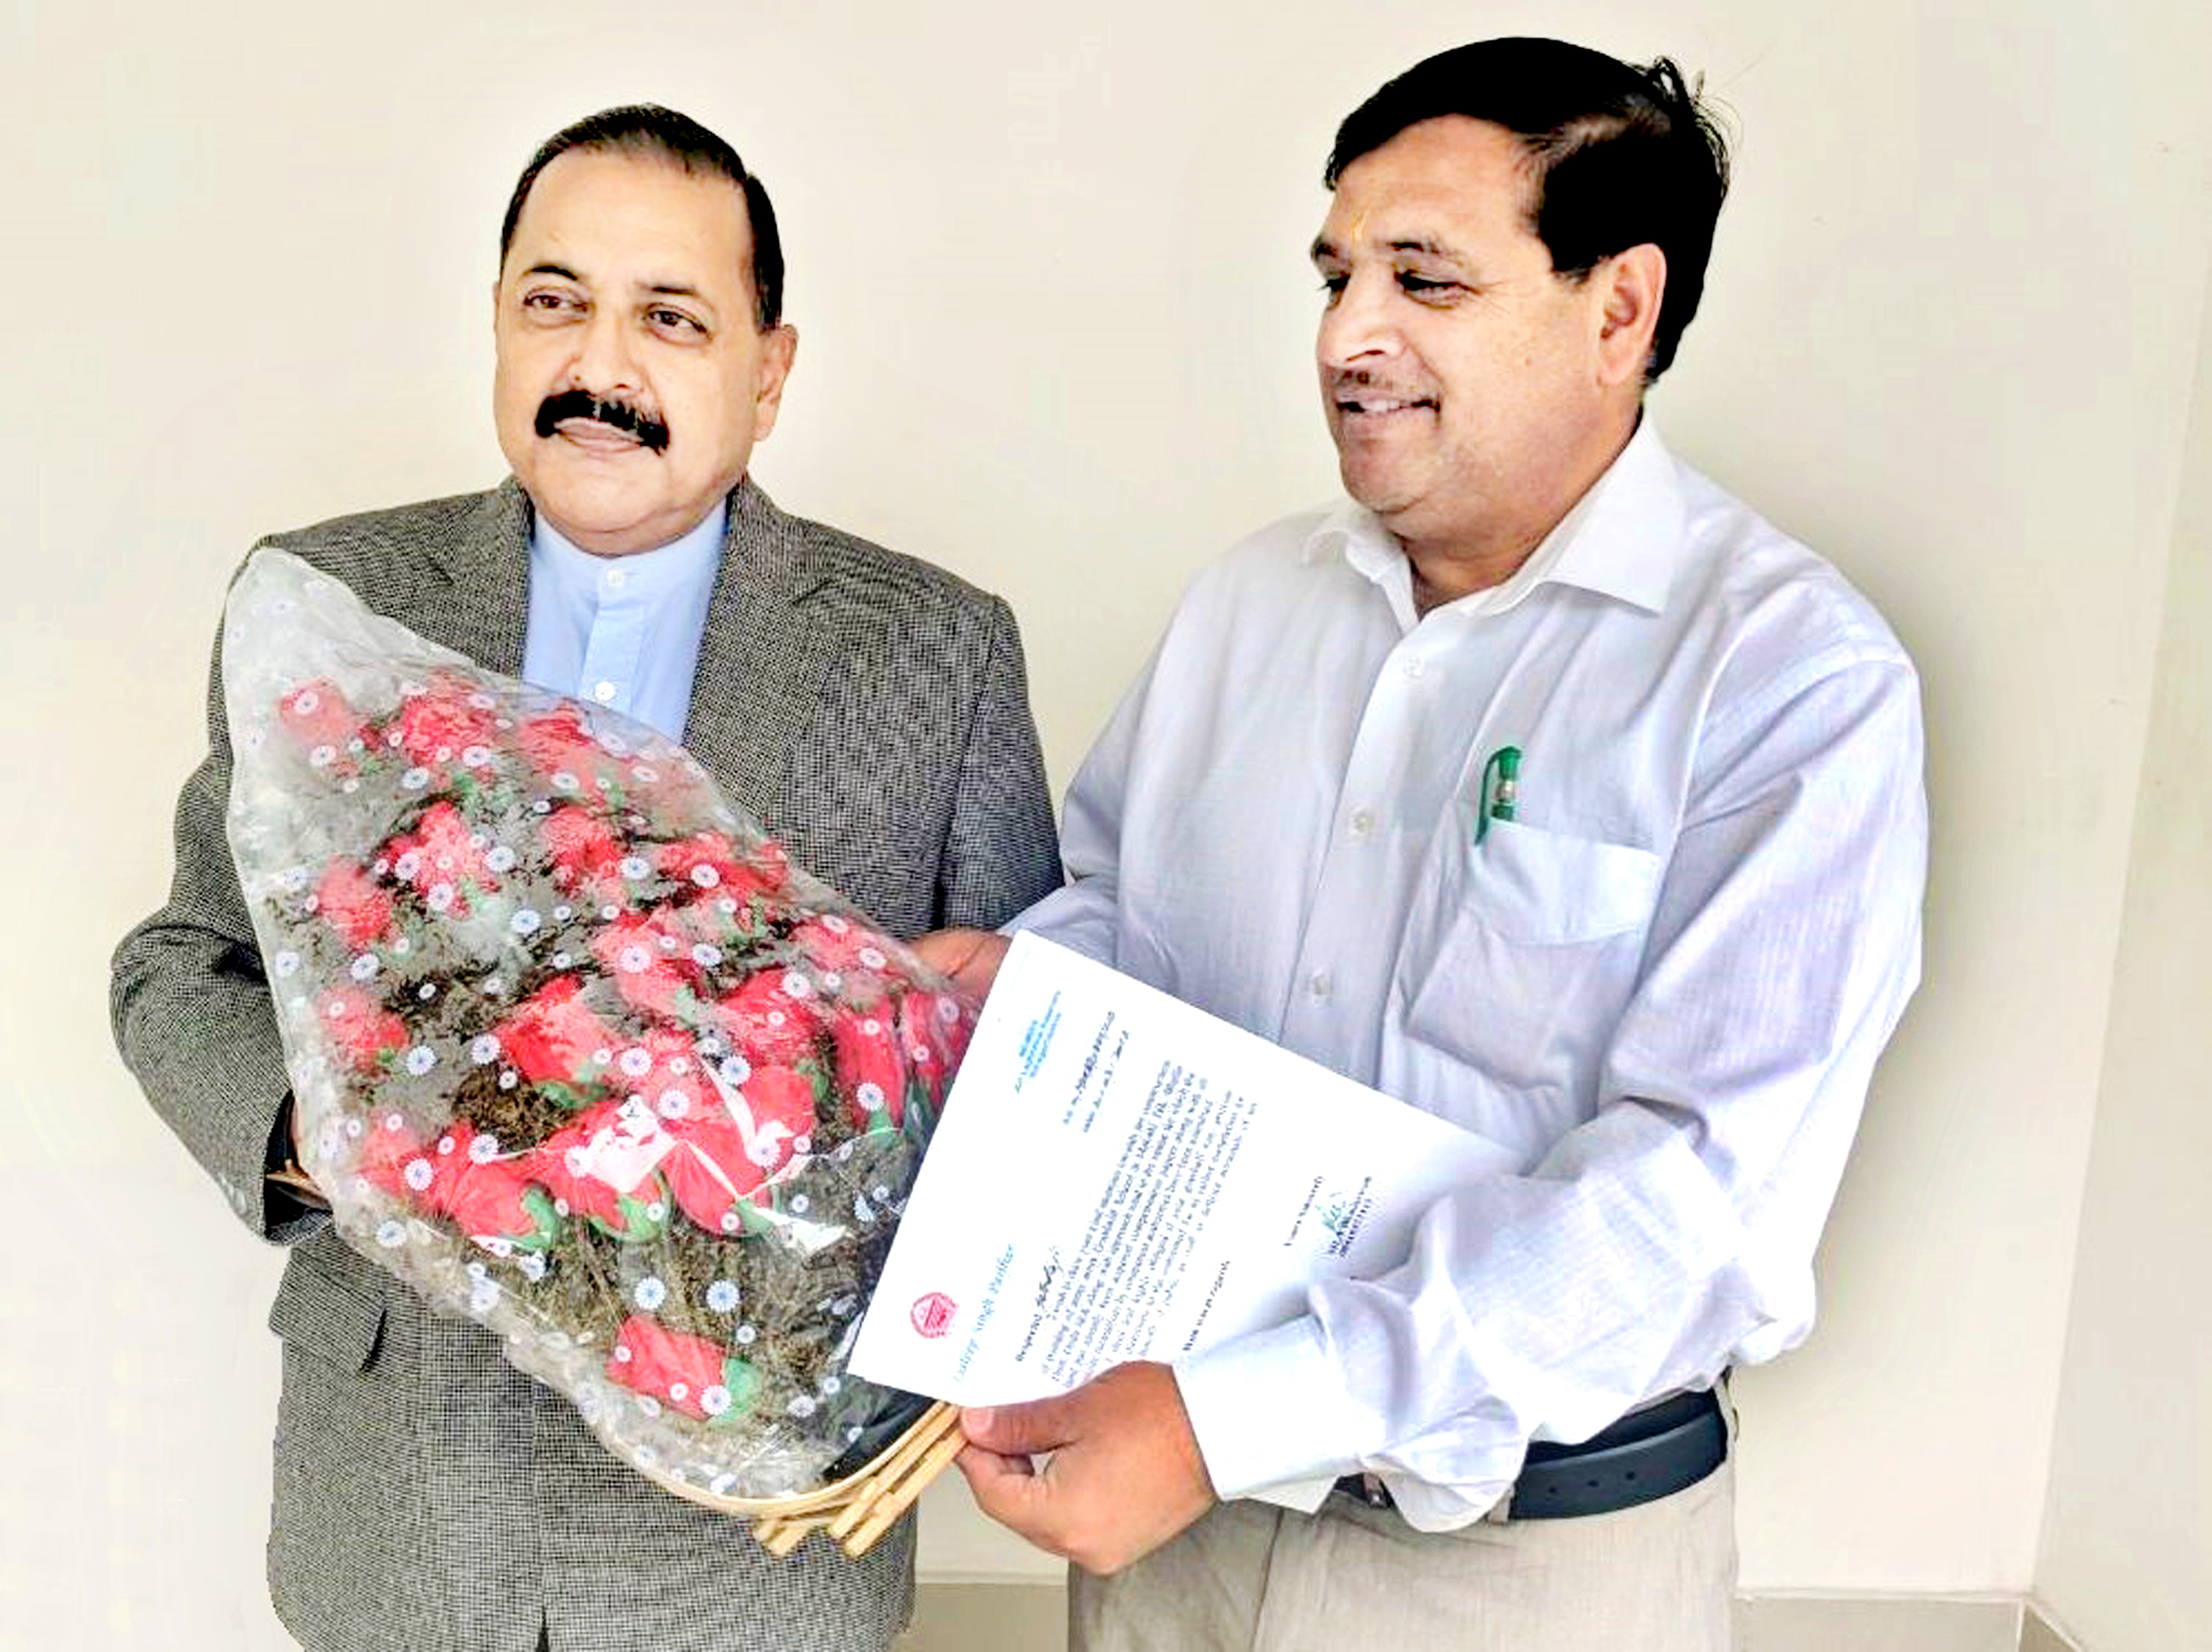 MLA Bhaderwah, Dilip Singh Parihar calling on Union Minister Dr Jitendra Singh to thank him for Centre's approval for the new National Highway linking district Doda with Himachal Pradesh.